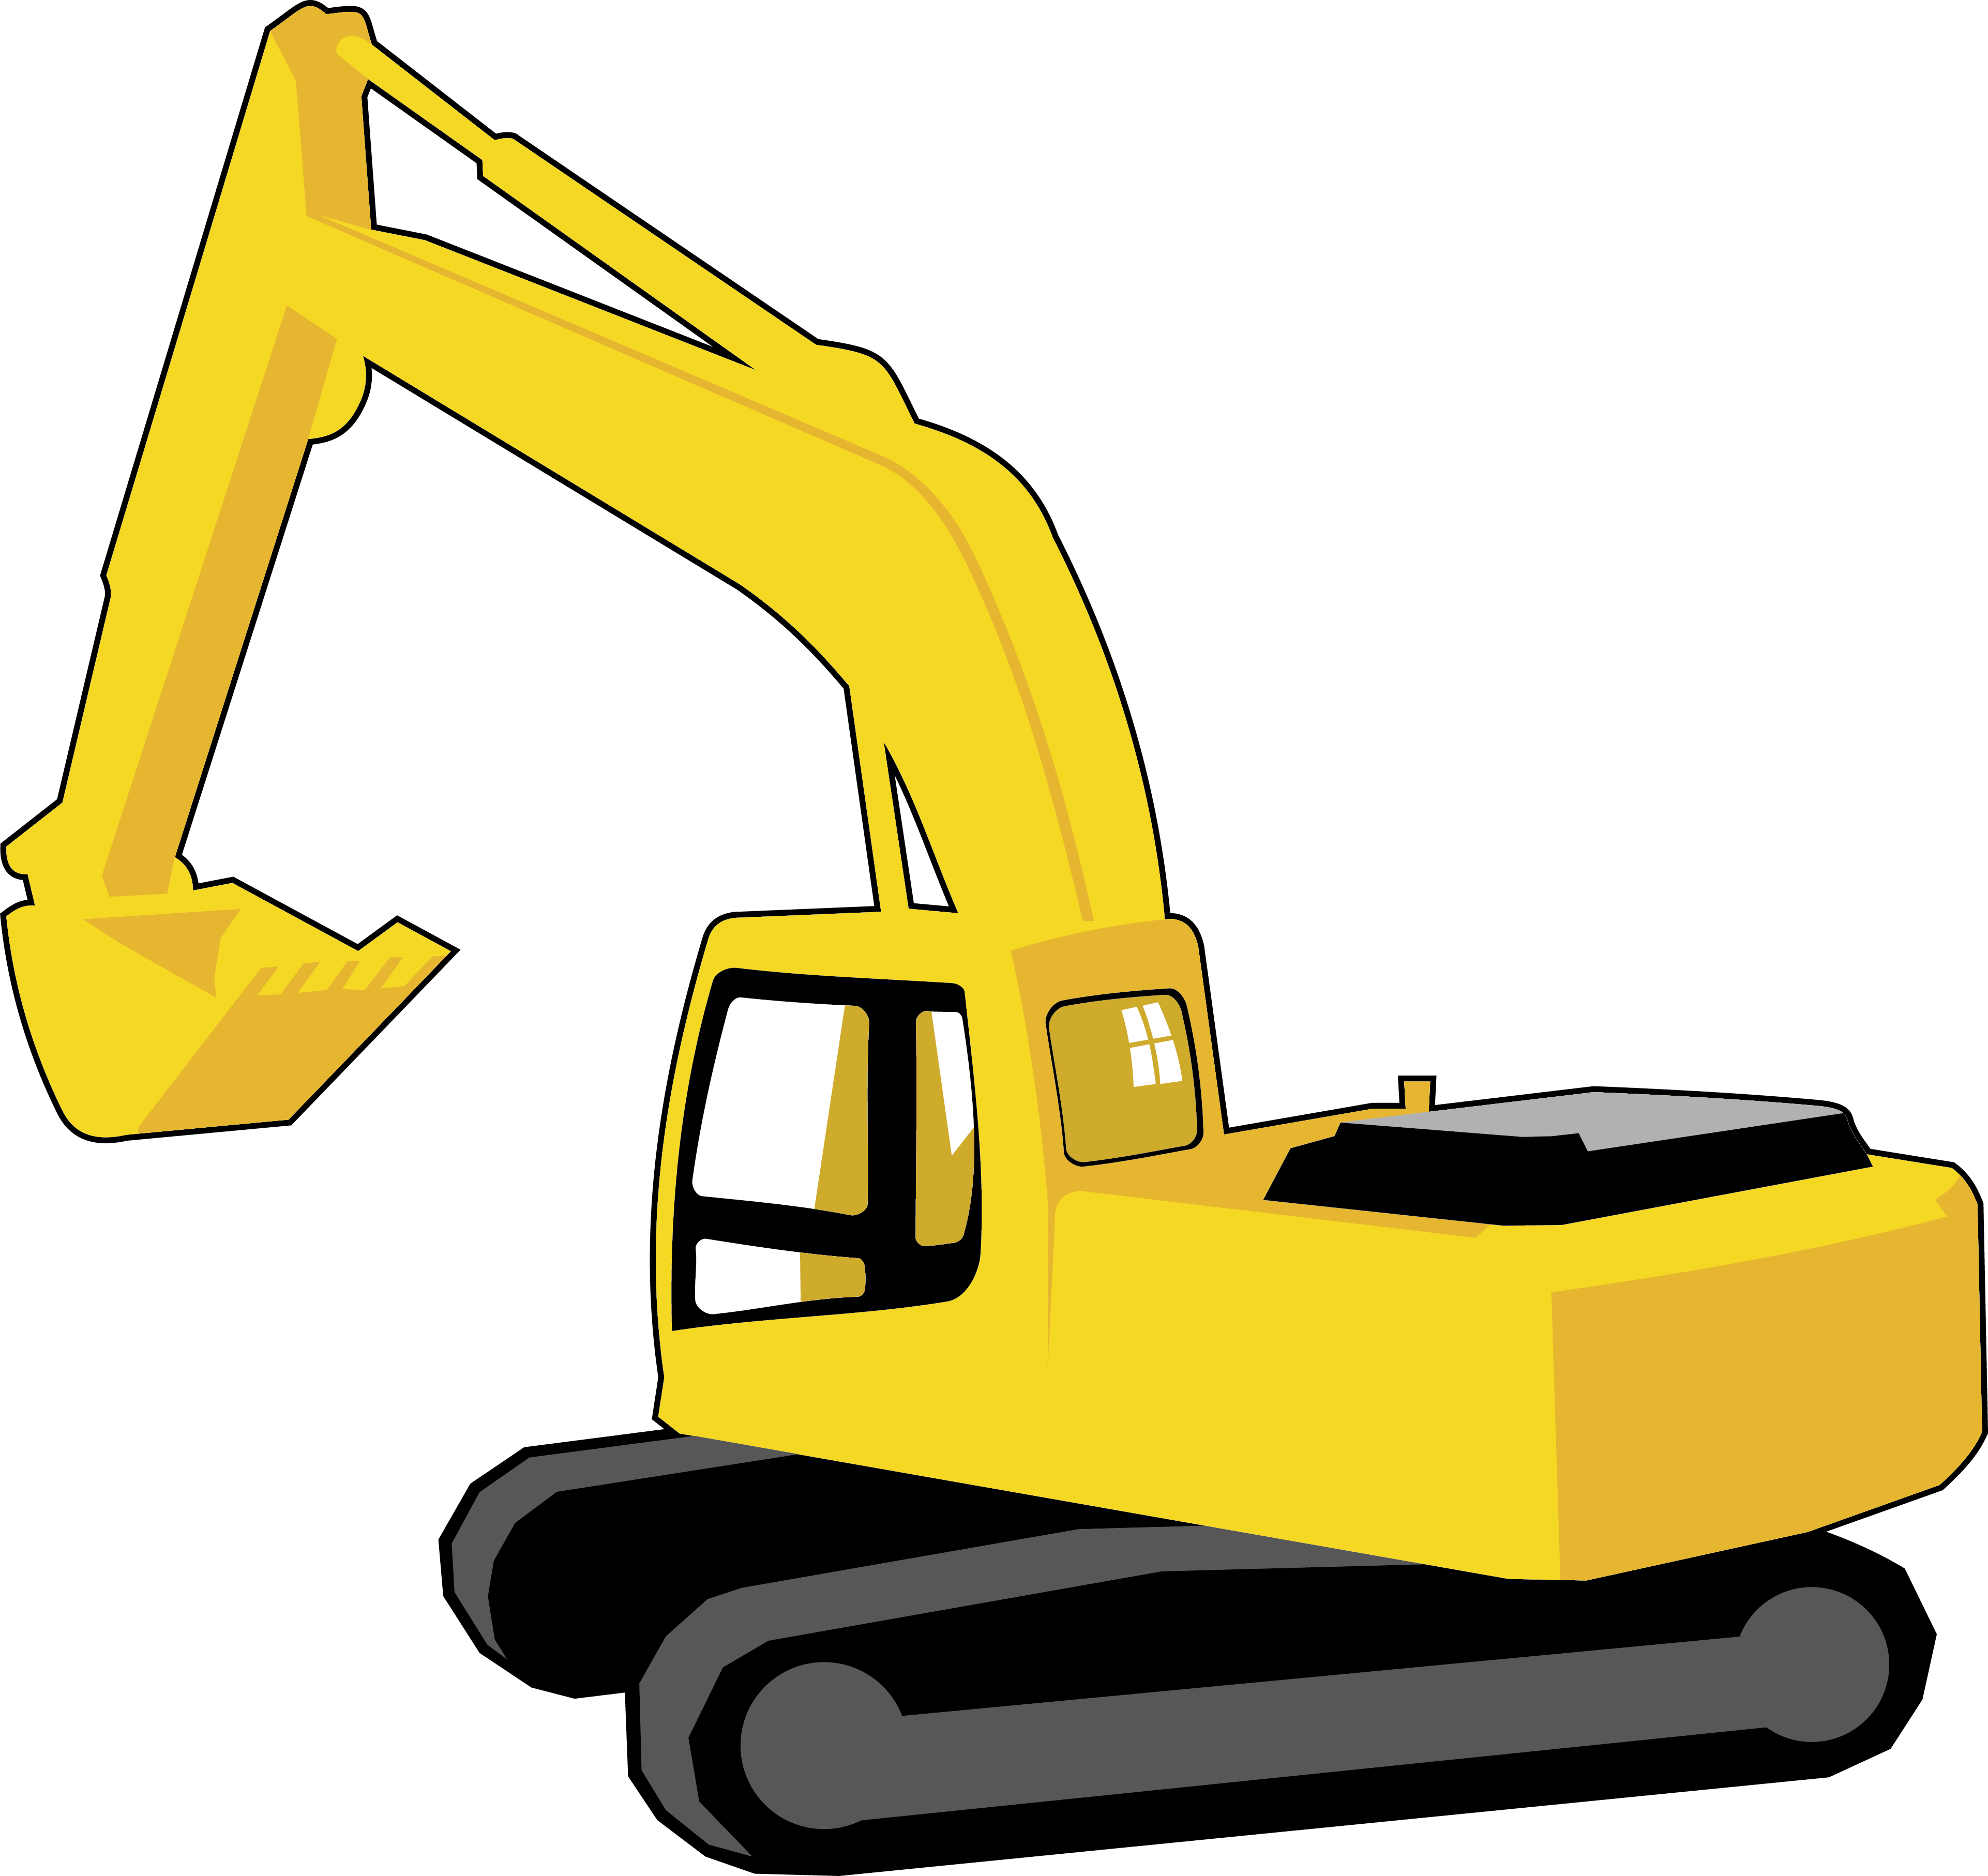 Backhoe clipart bulldozer. At getdrawings com free